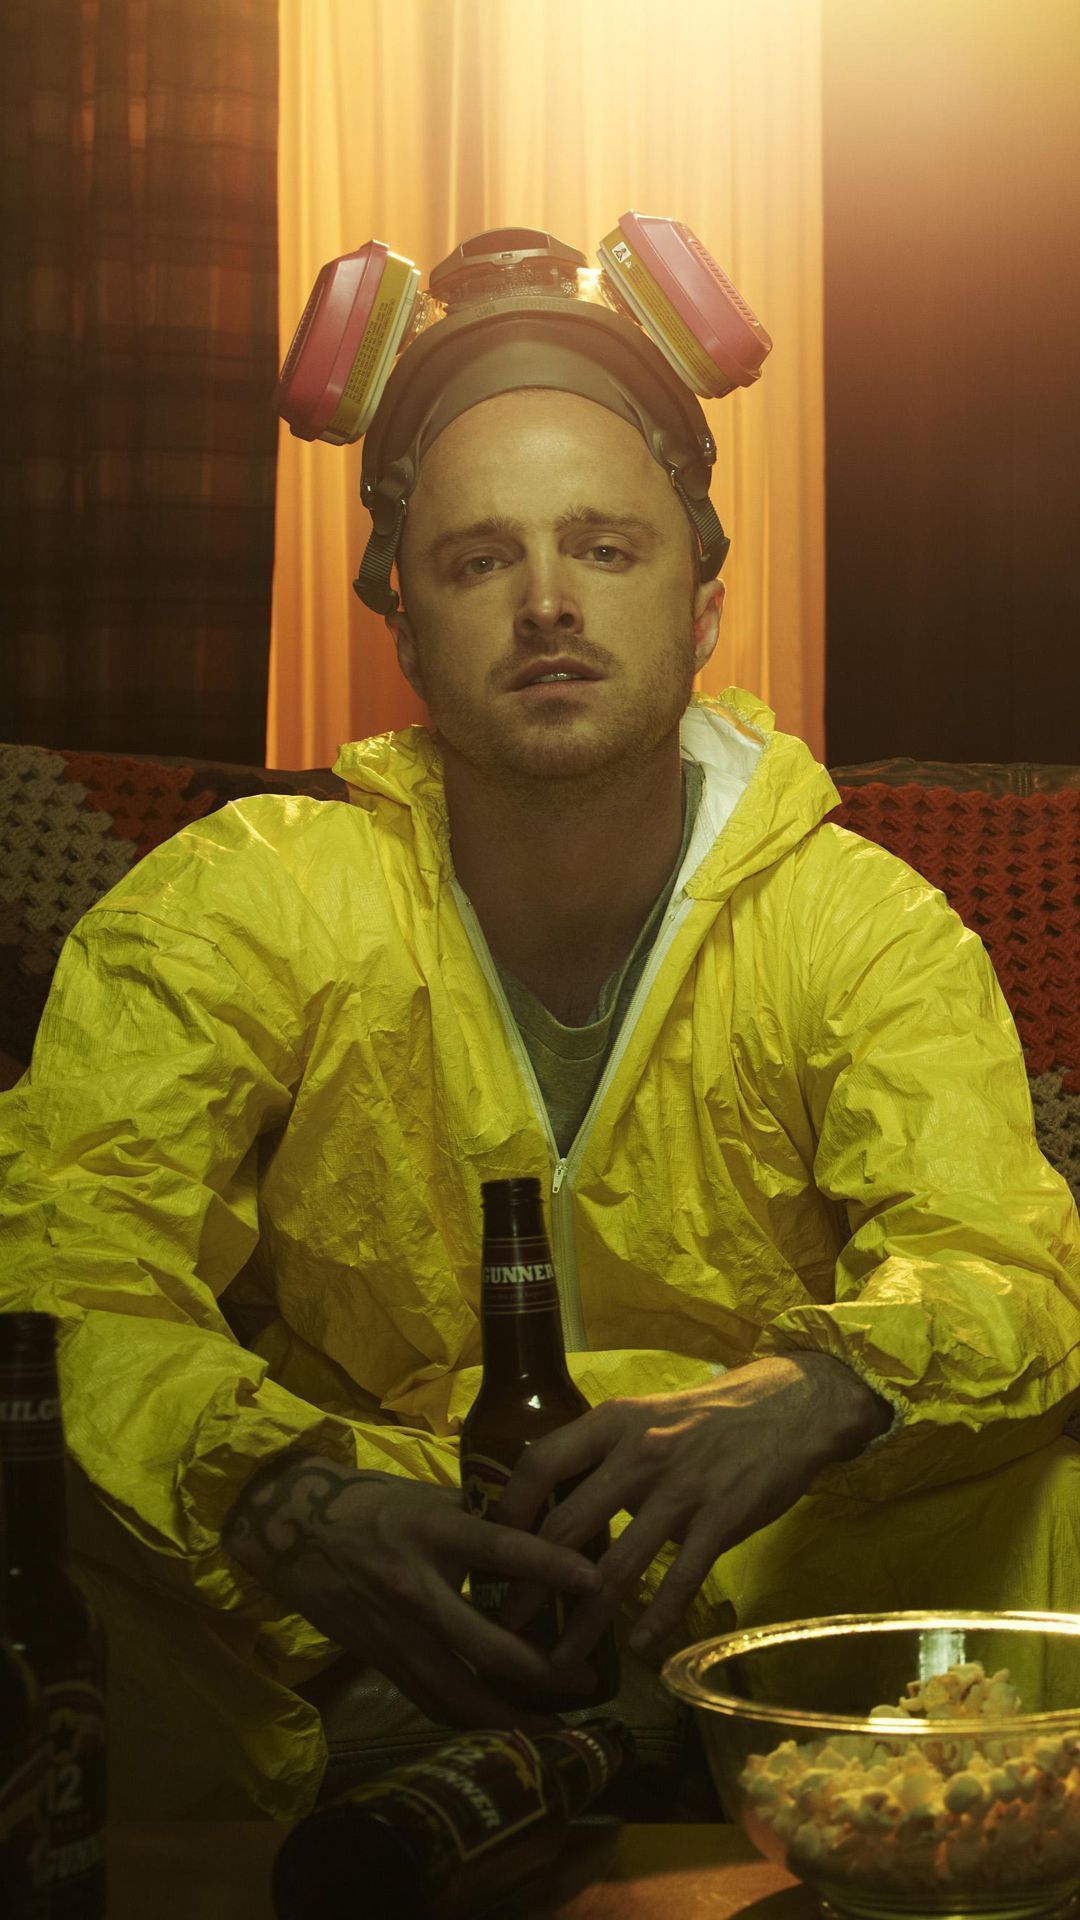 Aaron Paul as Jesse Pinkman in Breaking Bad, as a former student of ...